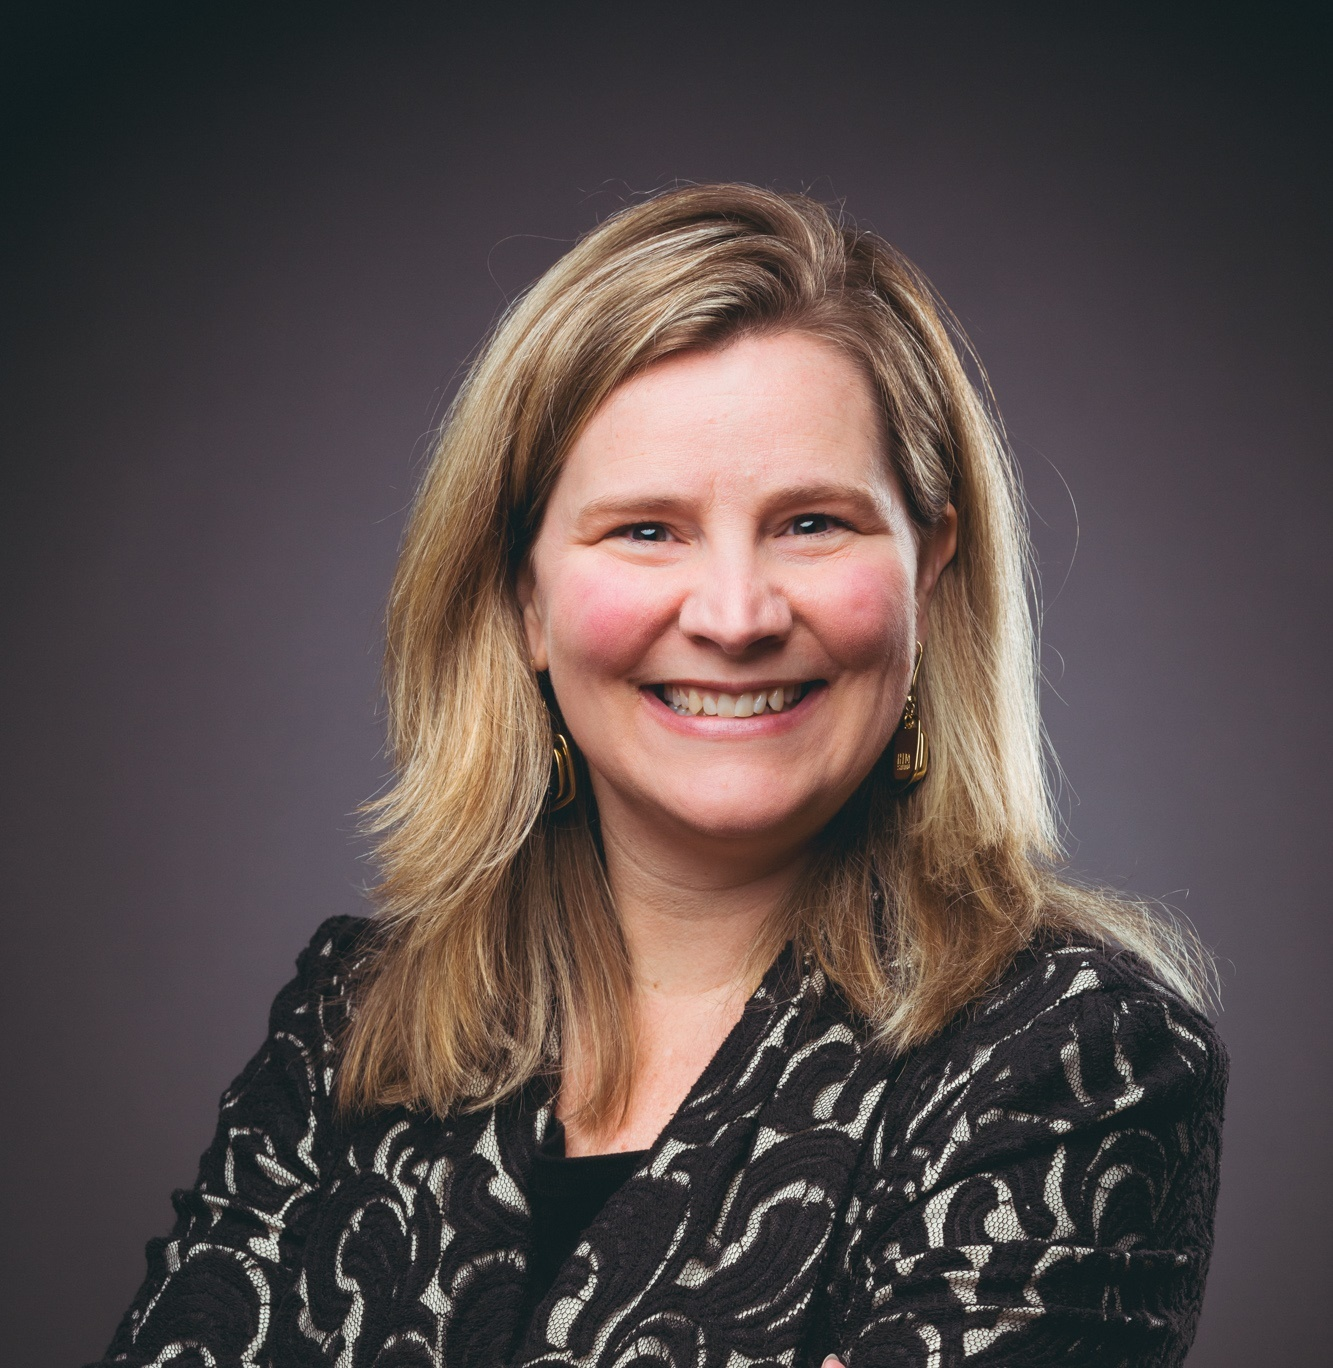 Amy Friedrich, president of United States Insurance Solutions at Principal. (Photo: Principal)